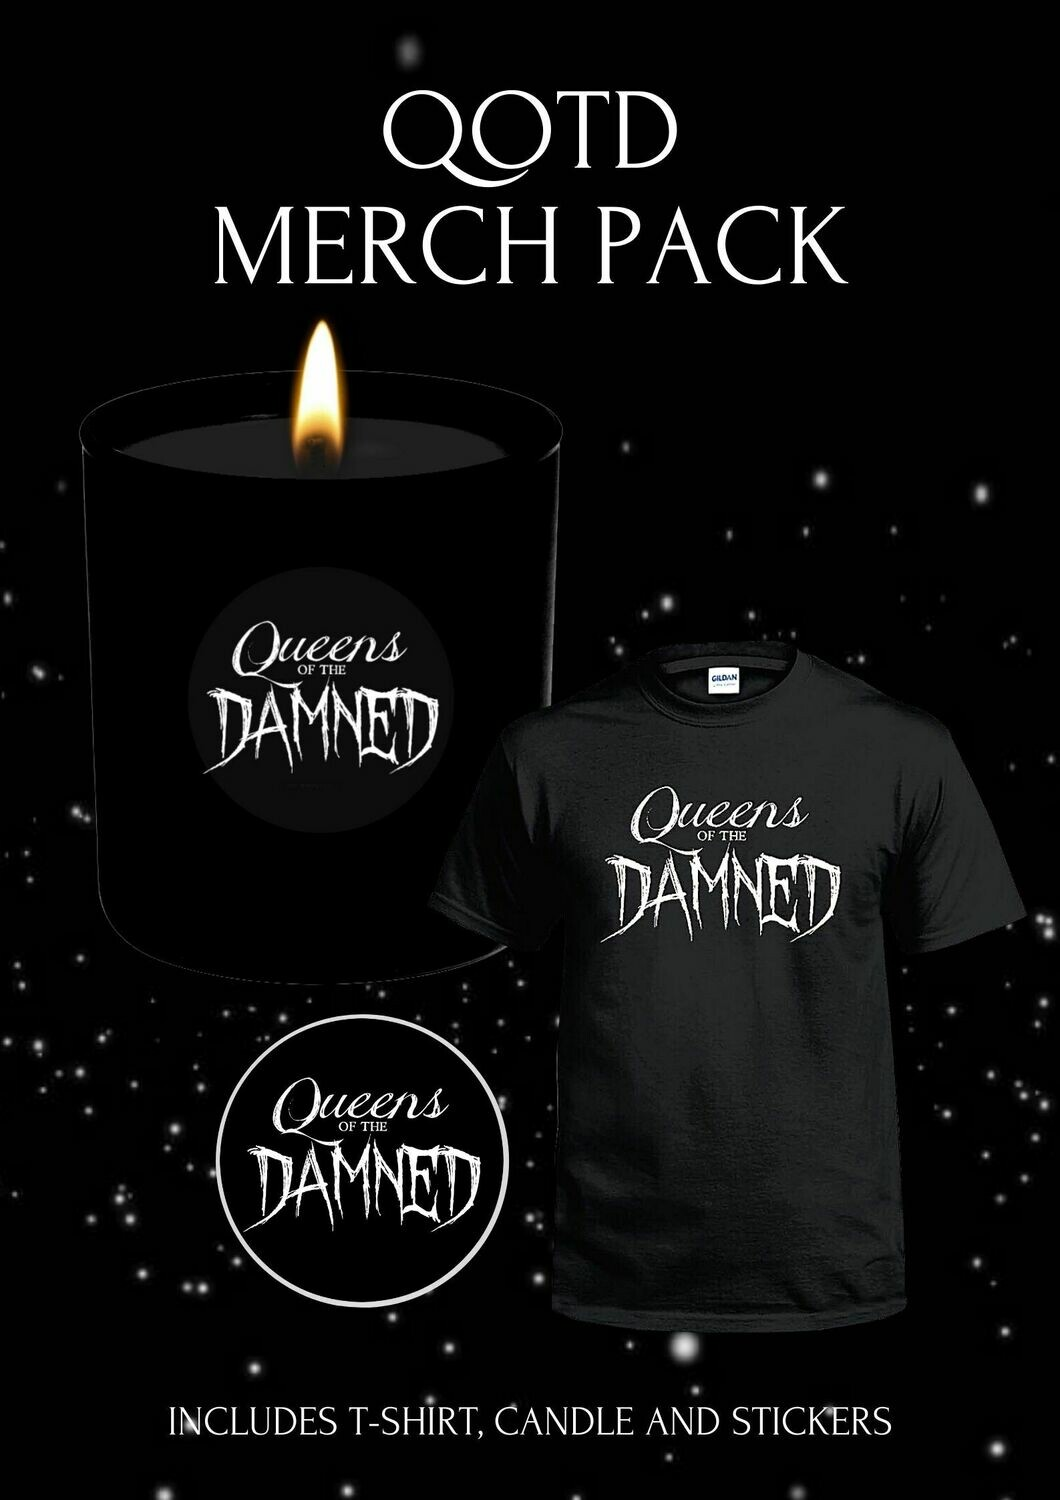 QUEENS OF THE DAMNED OFFICIAL MERCH PACK